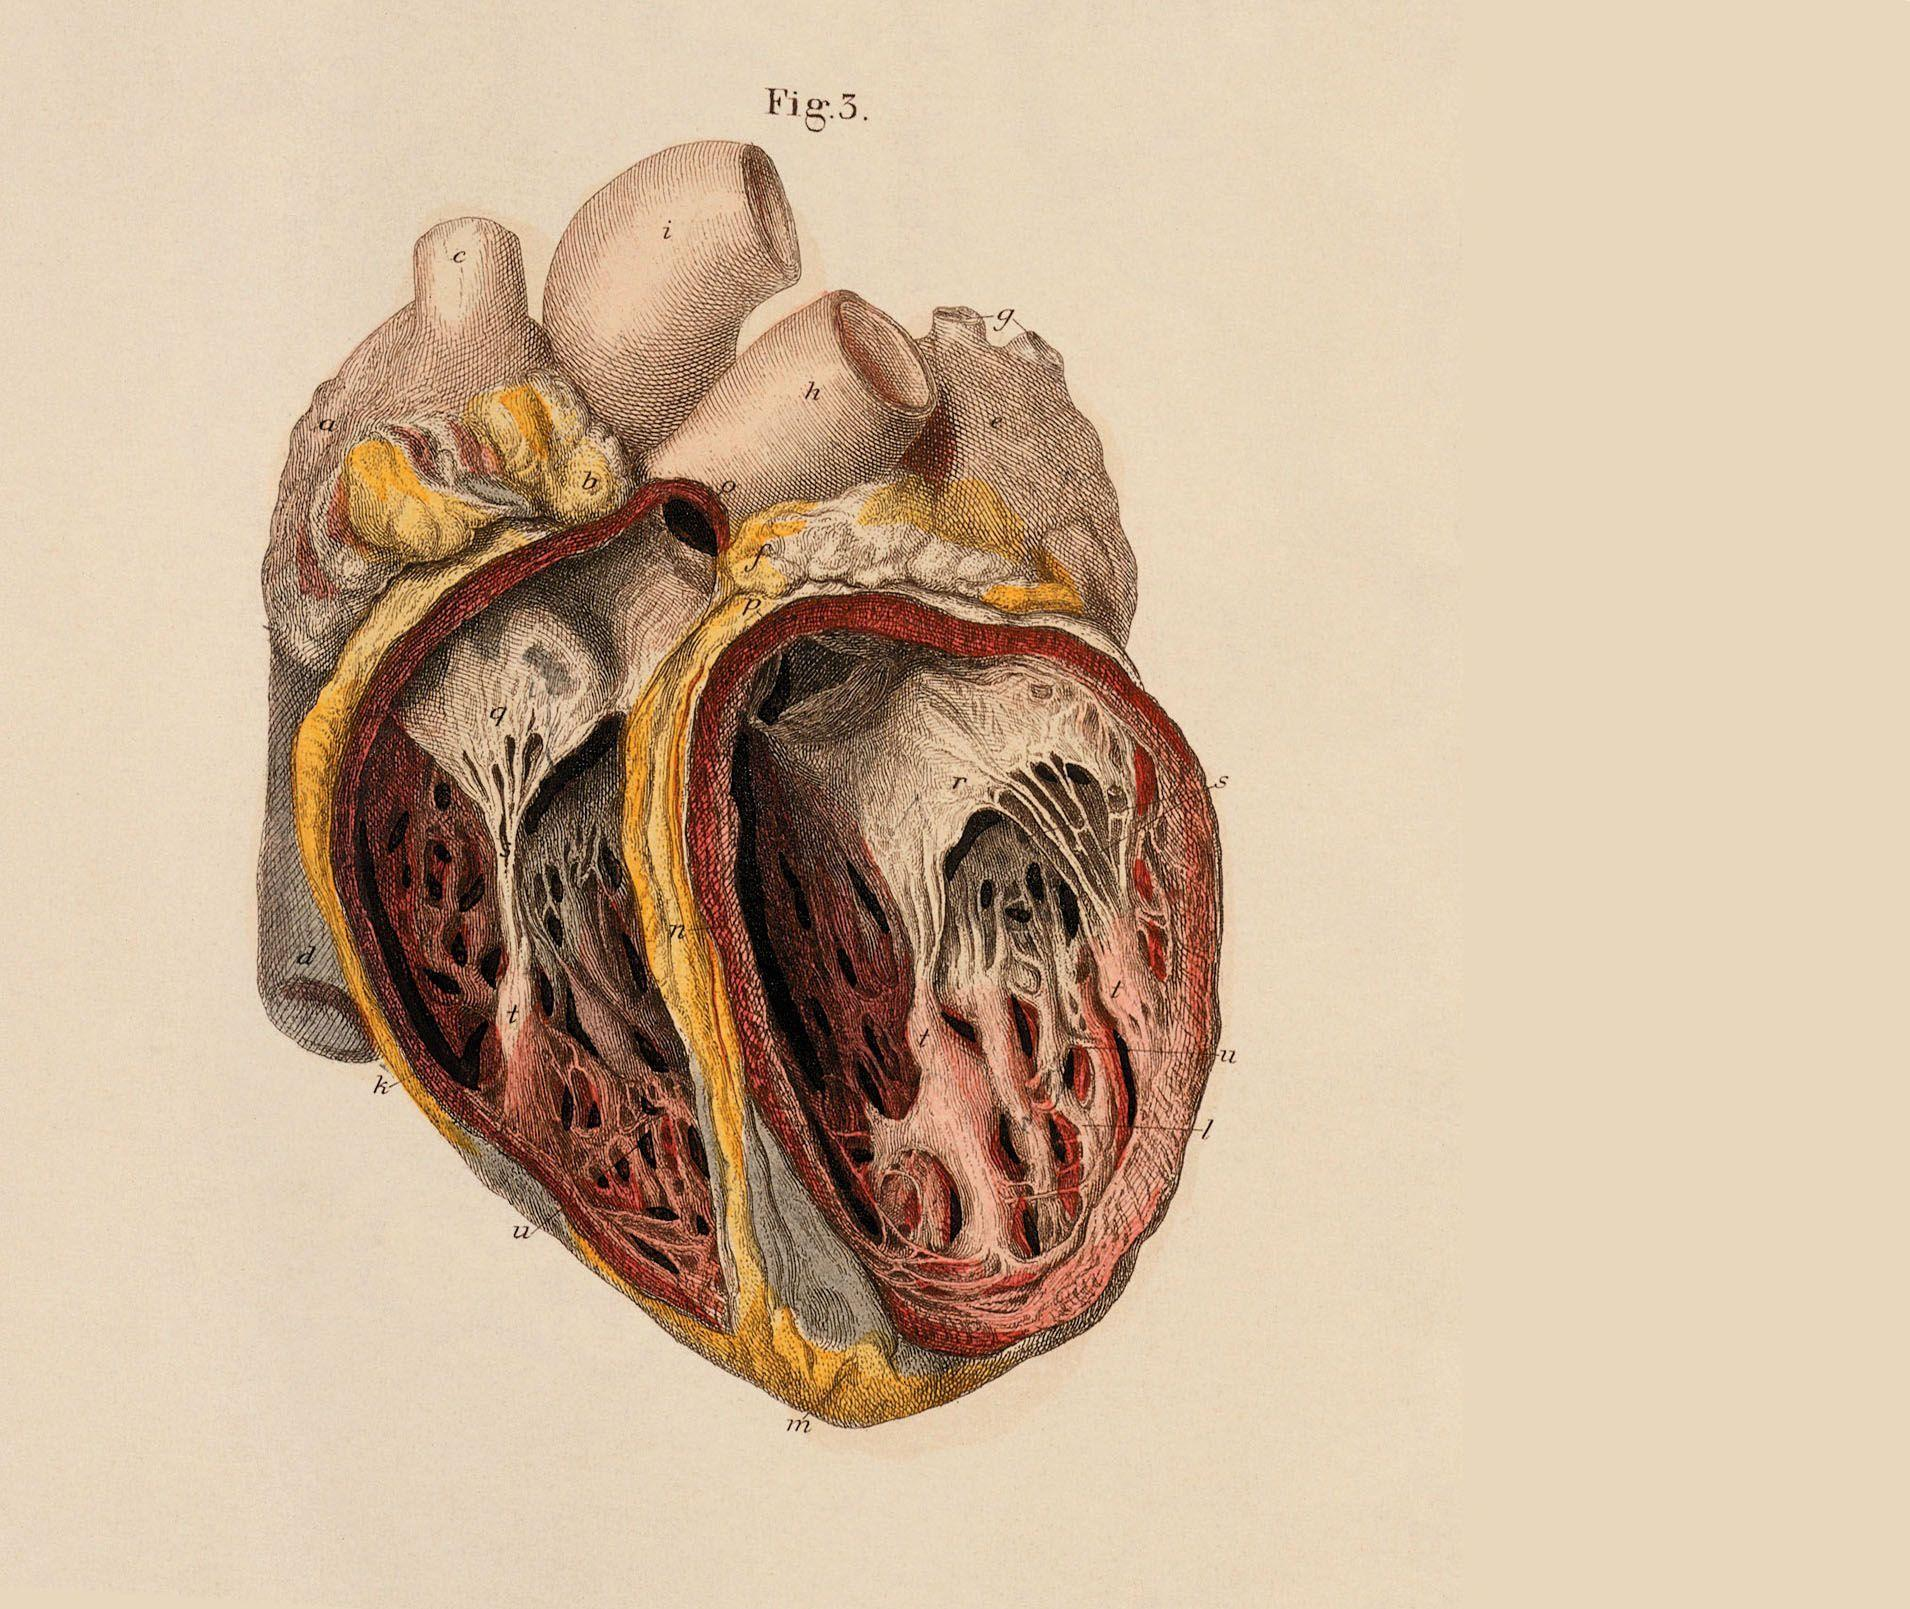 Heart Anatomy Wallpapers Wallpaper Cave